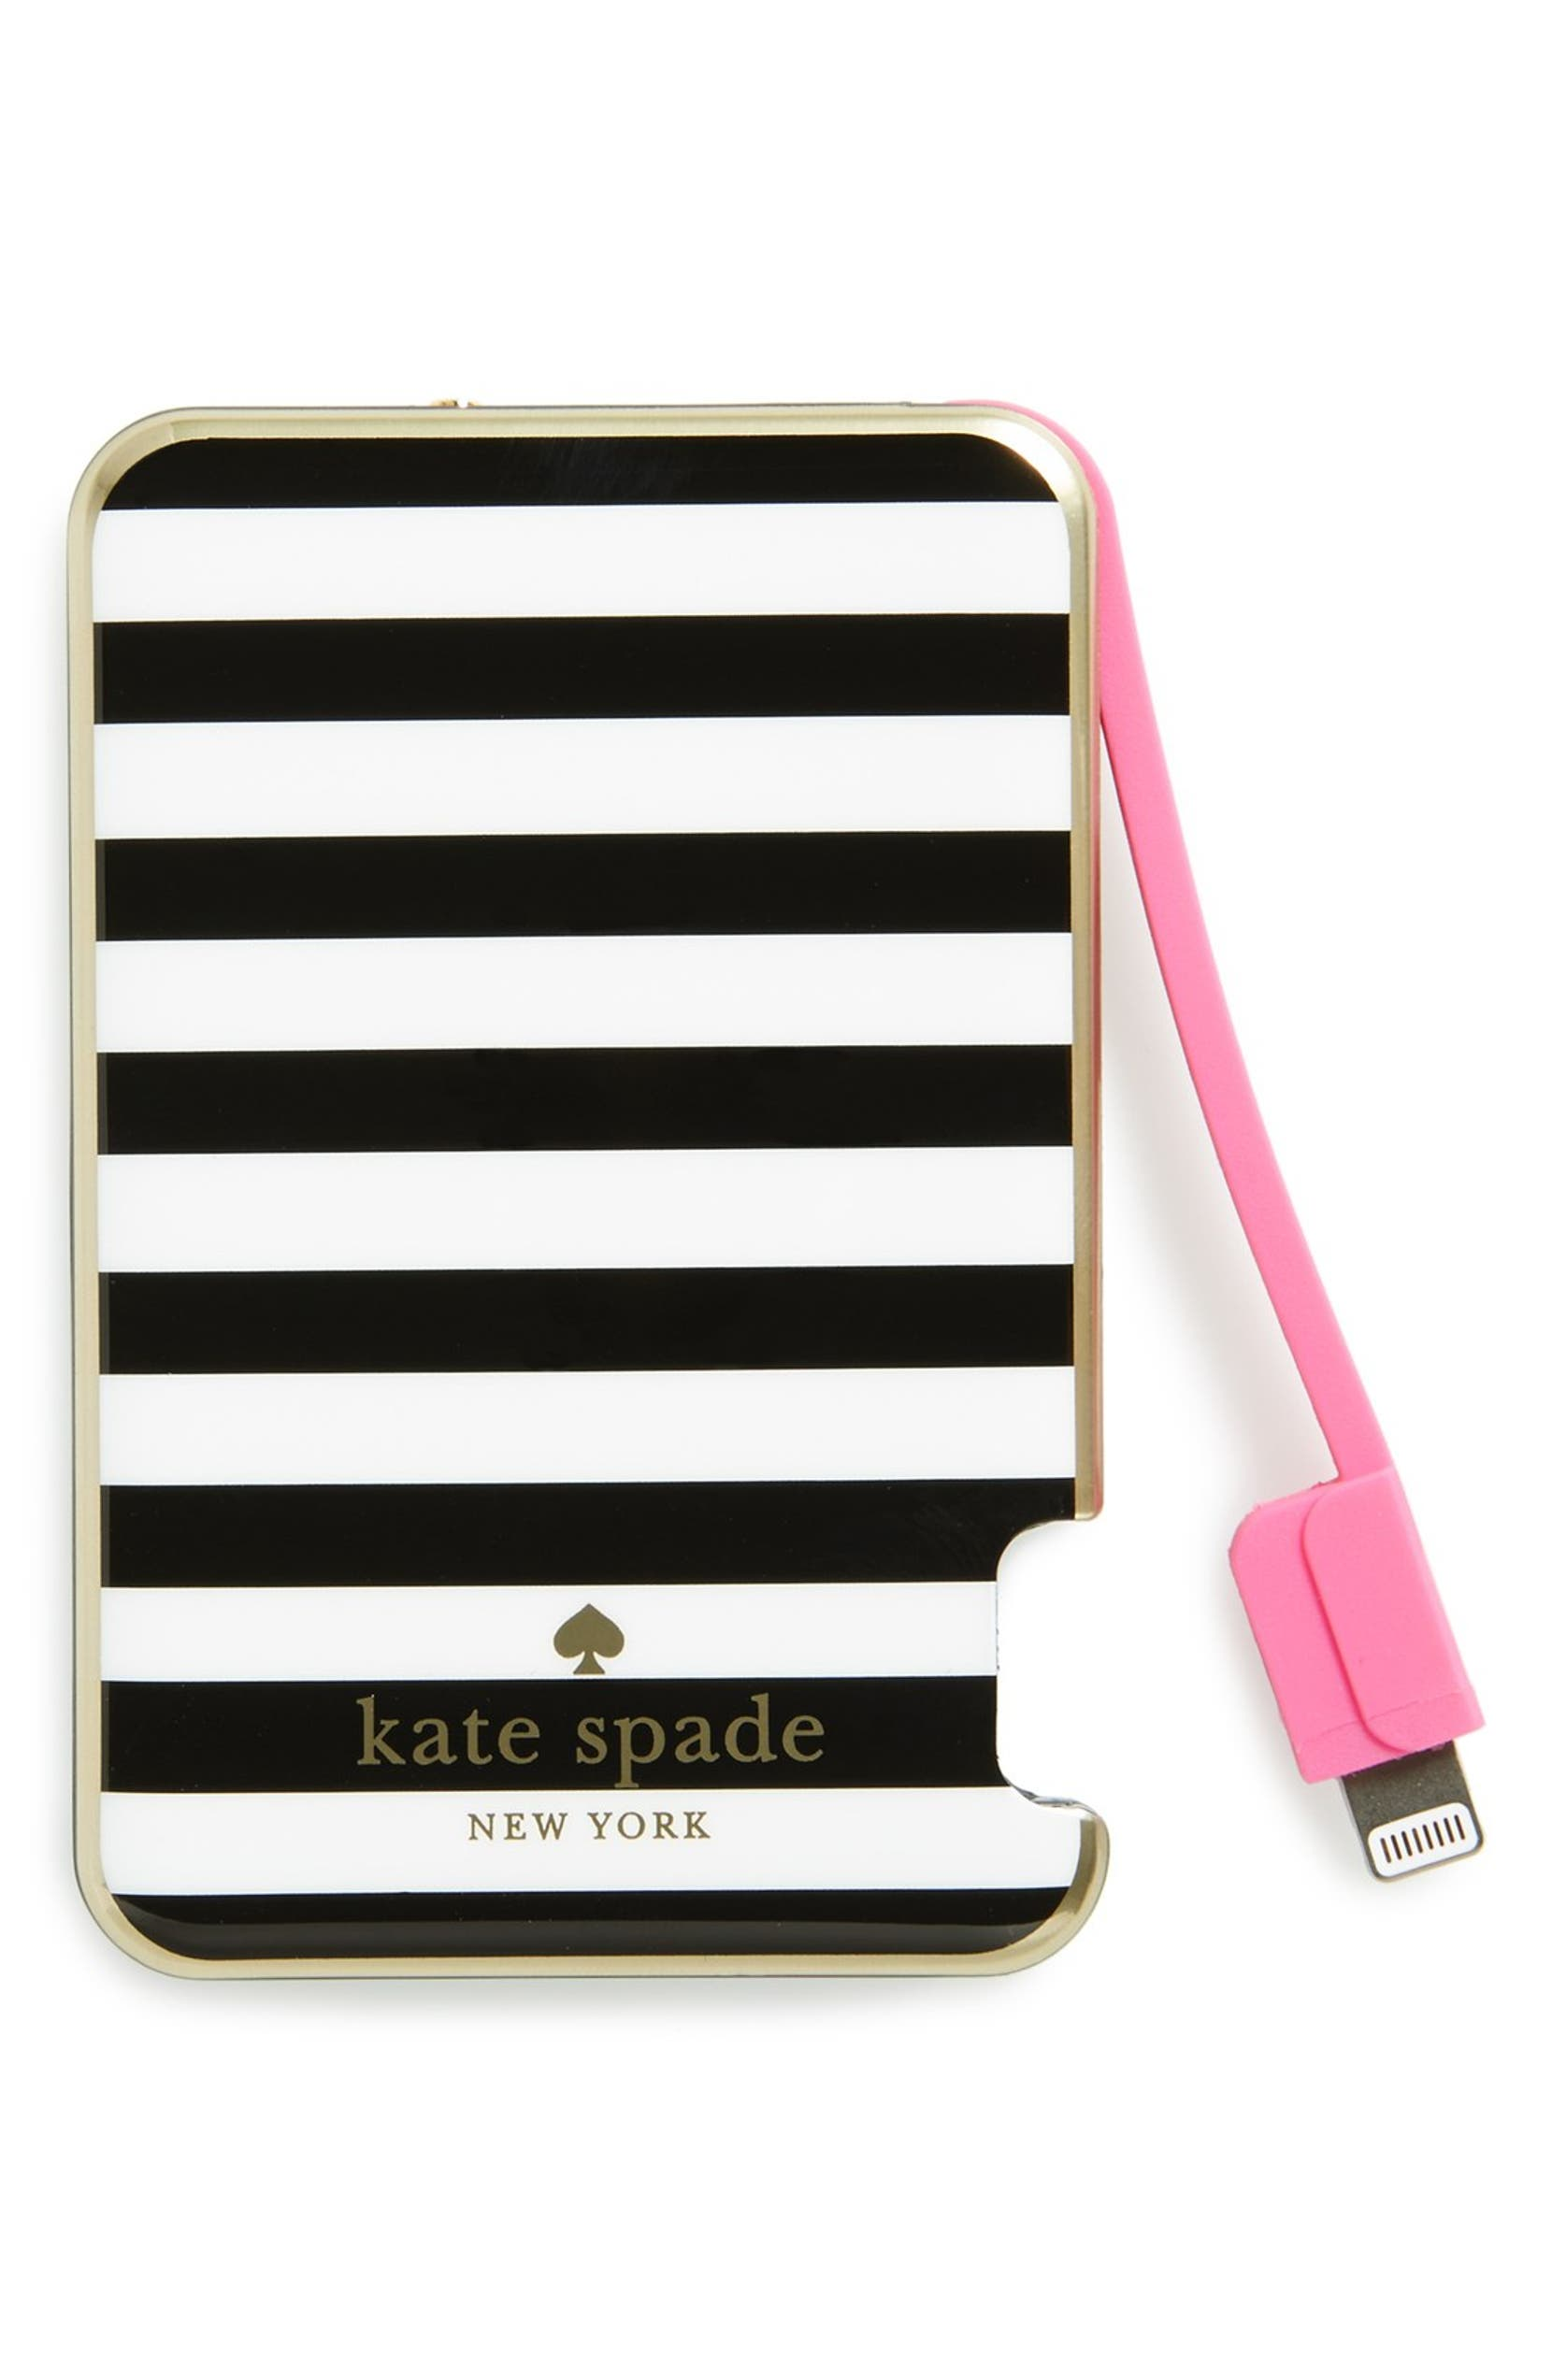 newest 81d4e ea92f kate spade new york slim portable charger